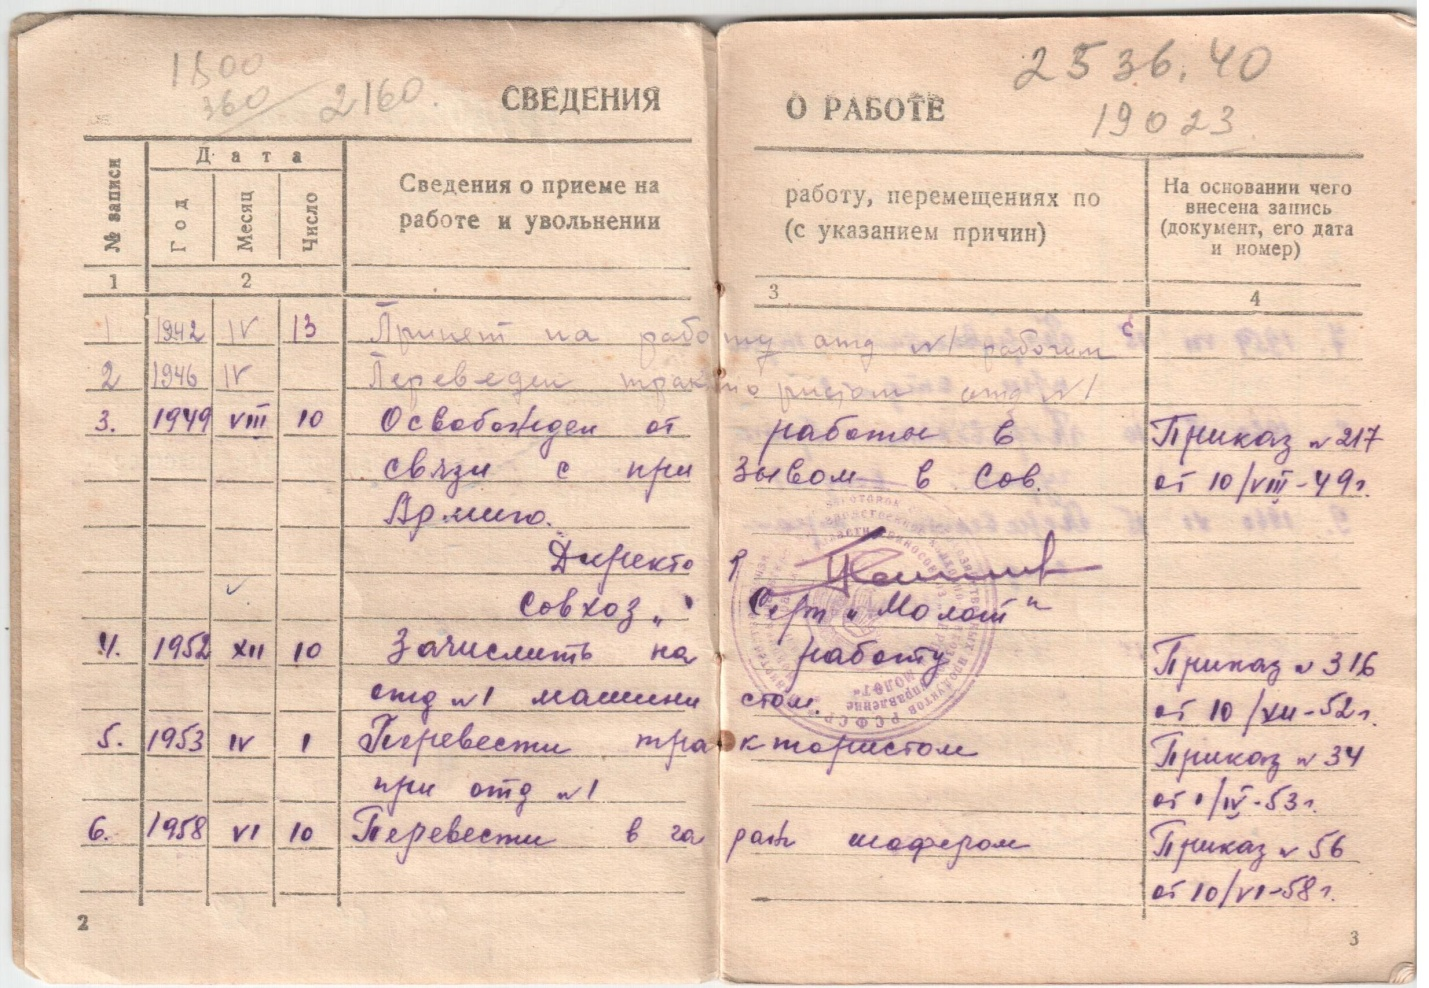 C:\Documents and Settings\Администратор\Local Settings\Temporary Internet Files\Content.Word\герой моей семьи 002.jpg